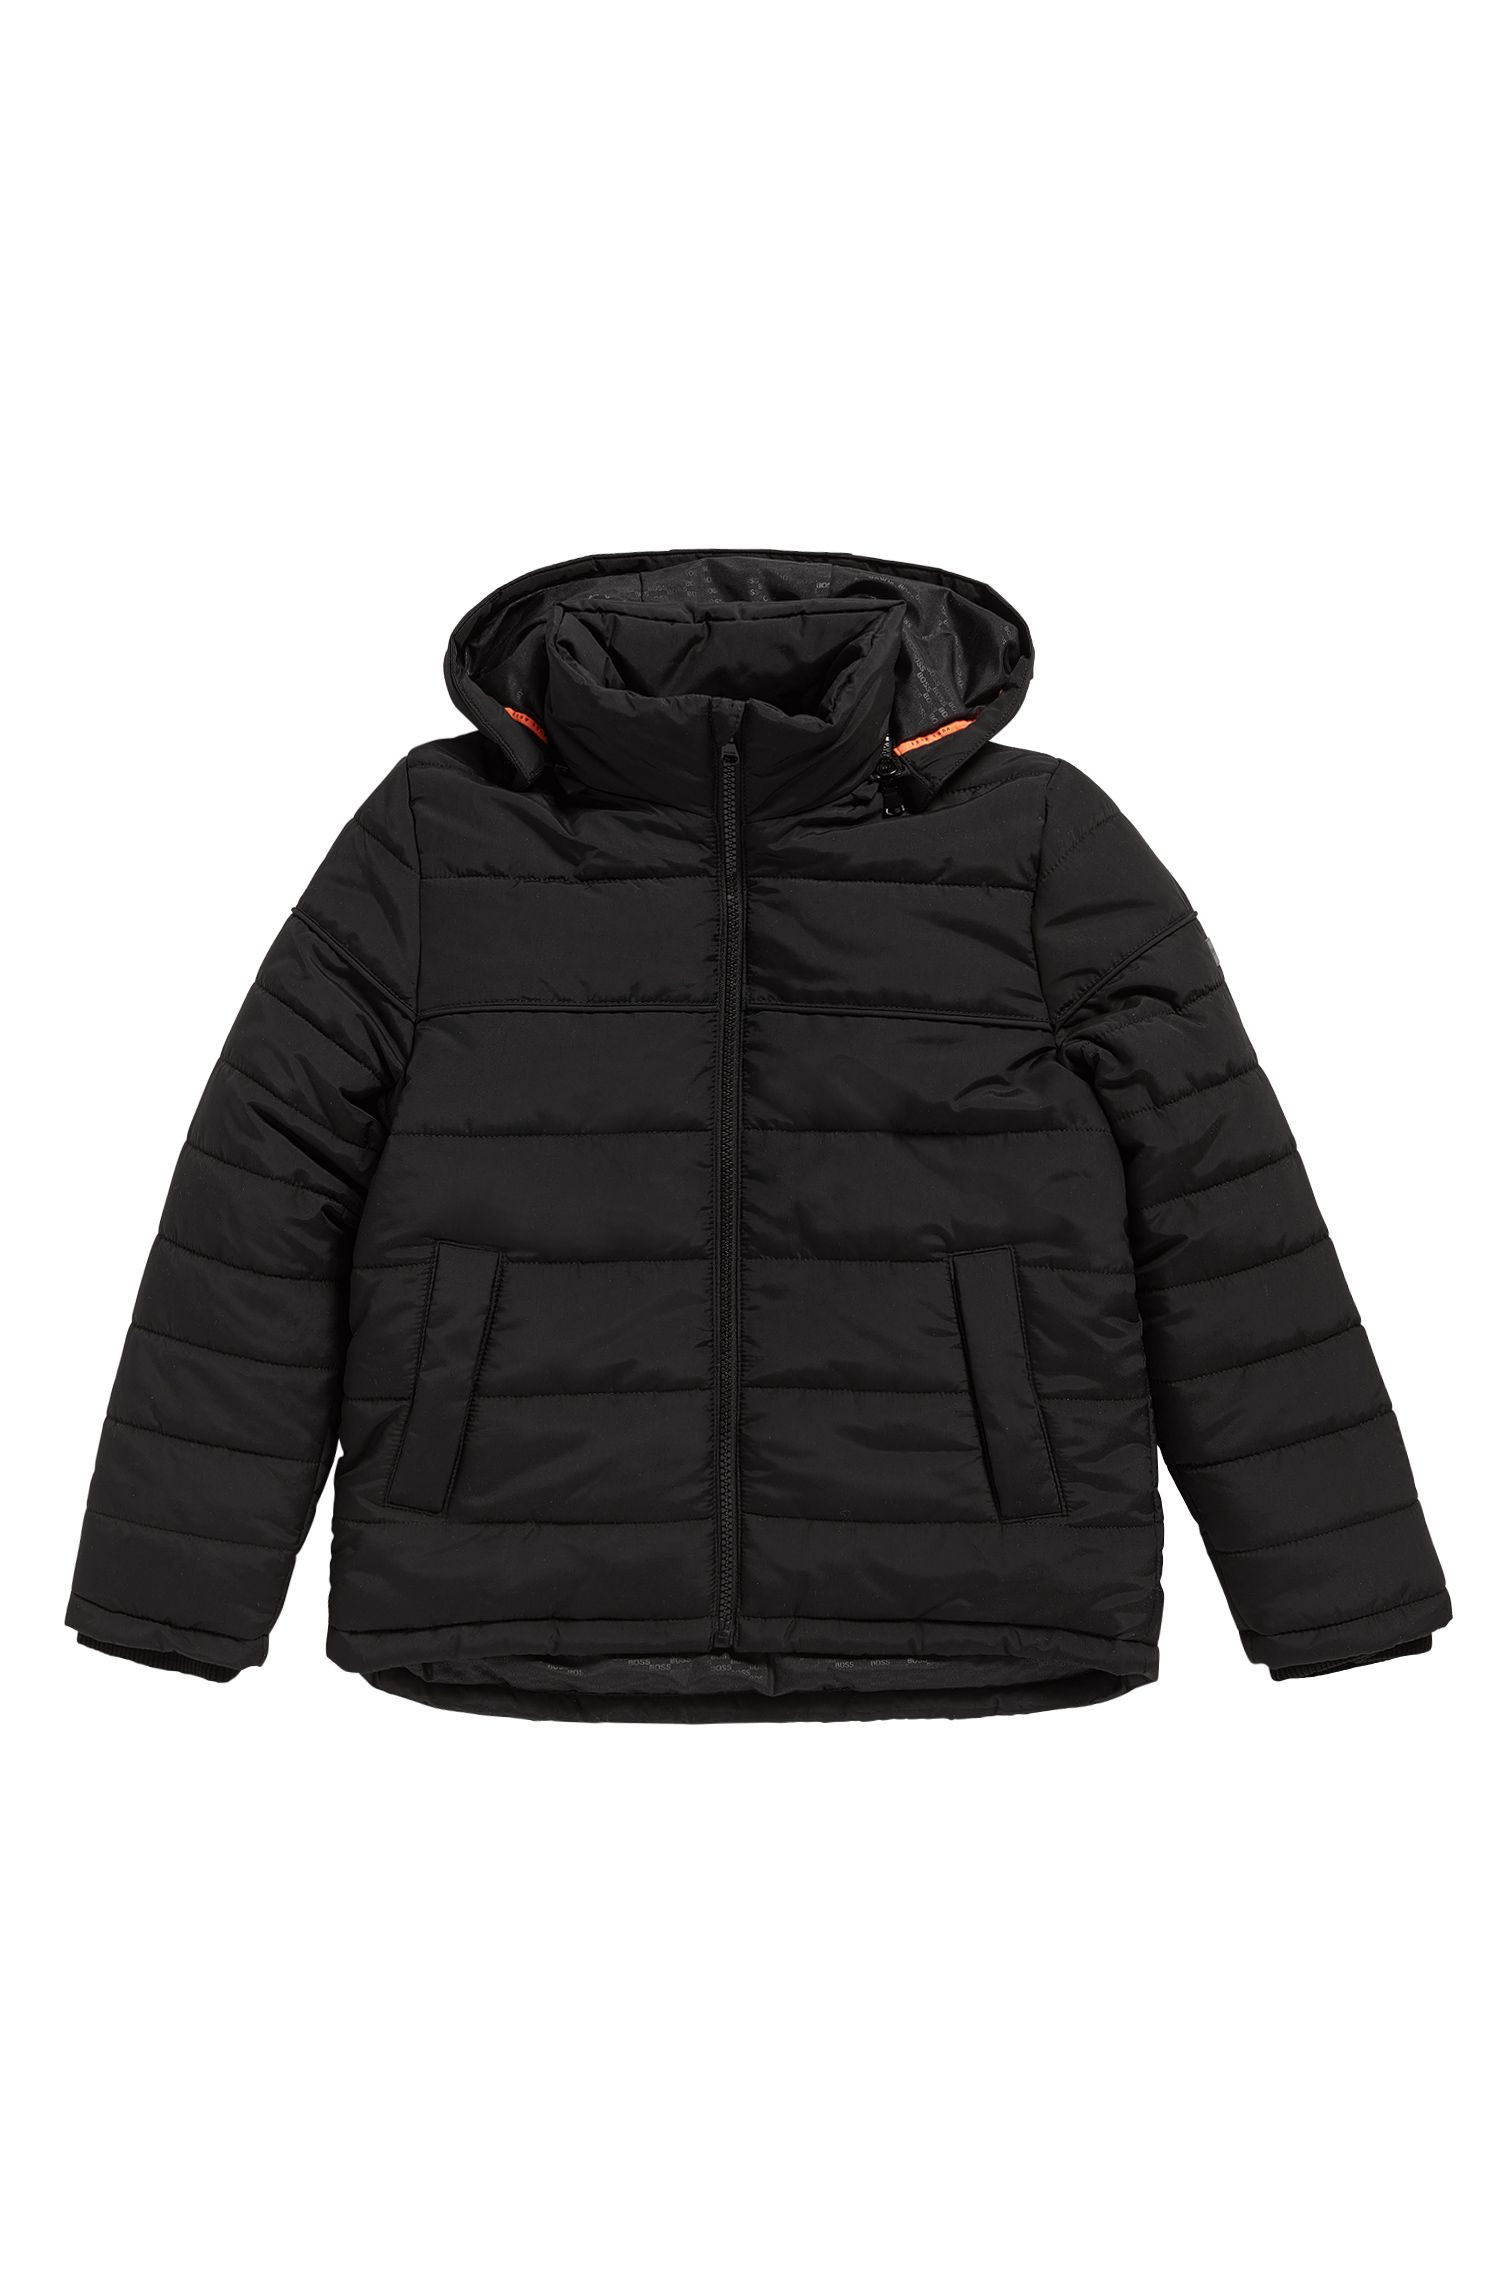 Kids' jacket in material blend with detachable hood: 'J26282'